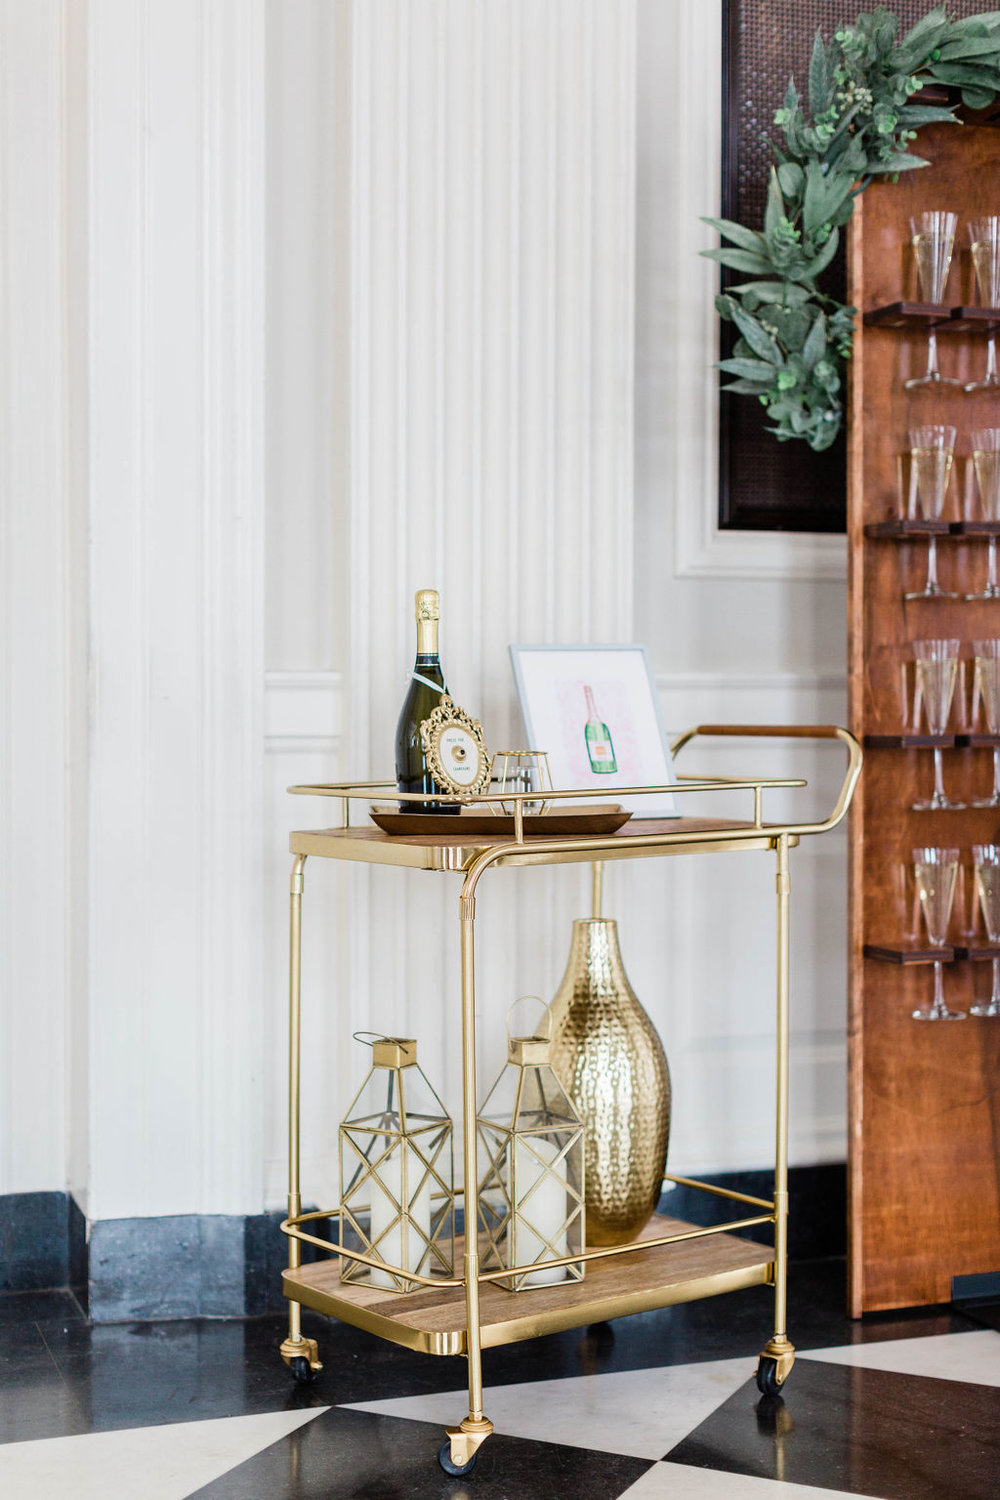 Bar Cart | Wedding Bar Ideas | Gold Wedding | Champagne Wall | Champagne Wall | Wedding Champagne | Chicago History Museum | Black Tie Wedding | Your Day by MK | Chicago Wedding Planner